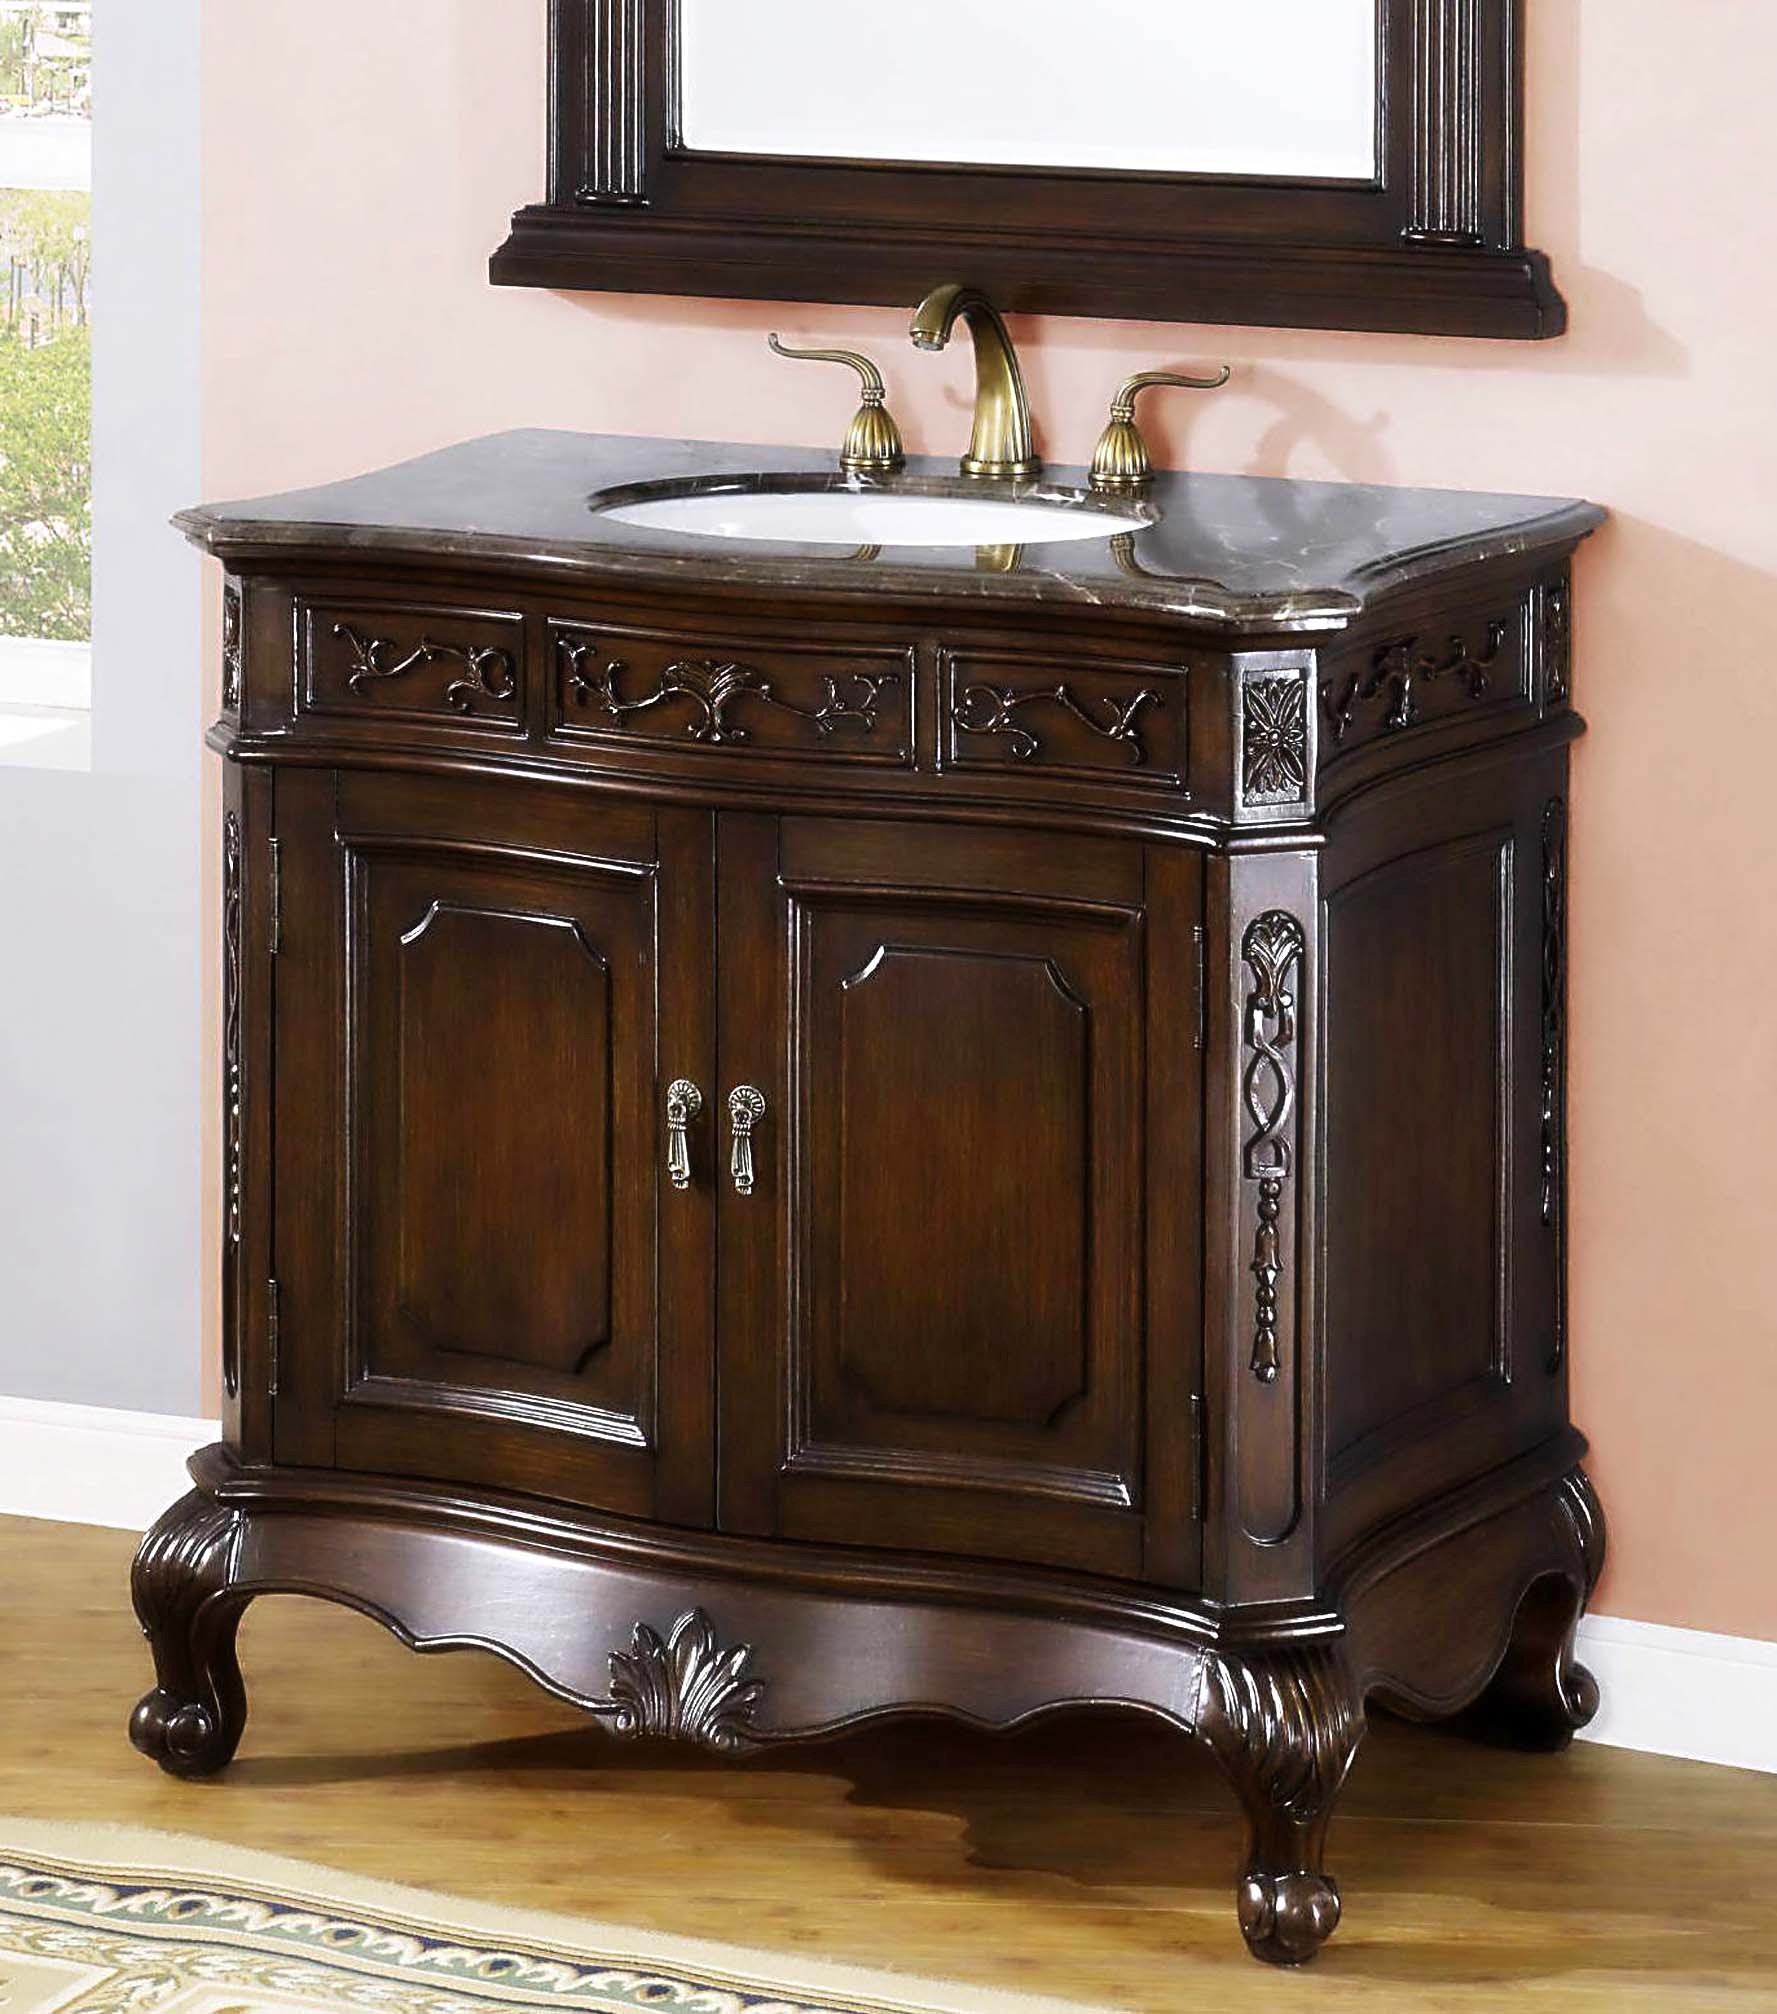 Lowes Bathroom Vanities and Sinks Contemporary Shop Bathroom Vanities at Lowes with Sinks and Cabinets Inspiration